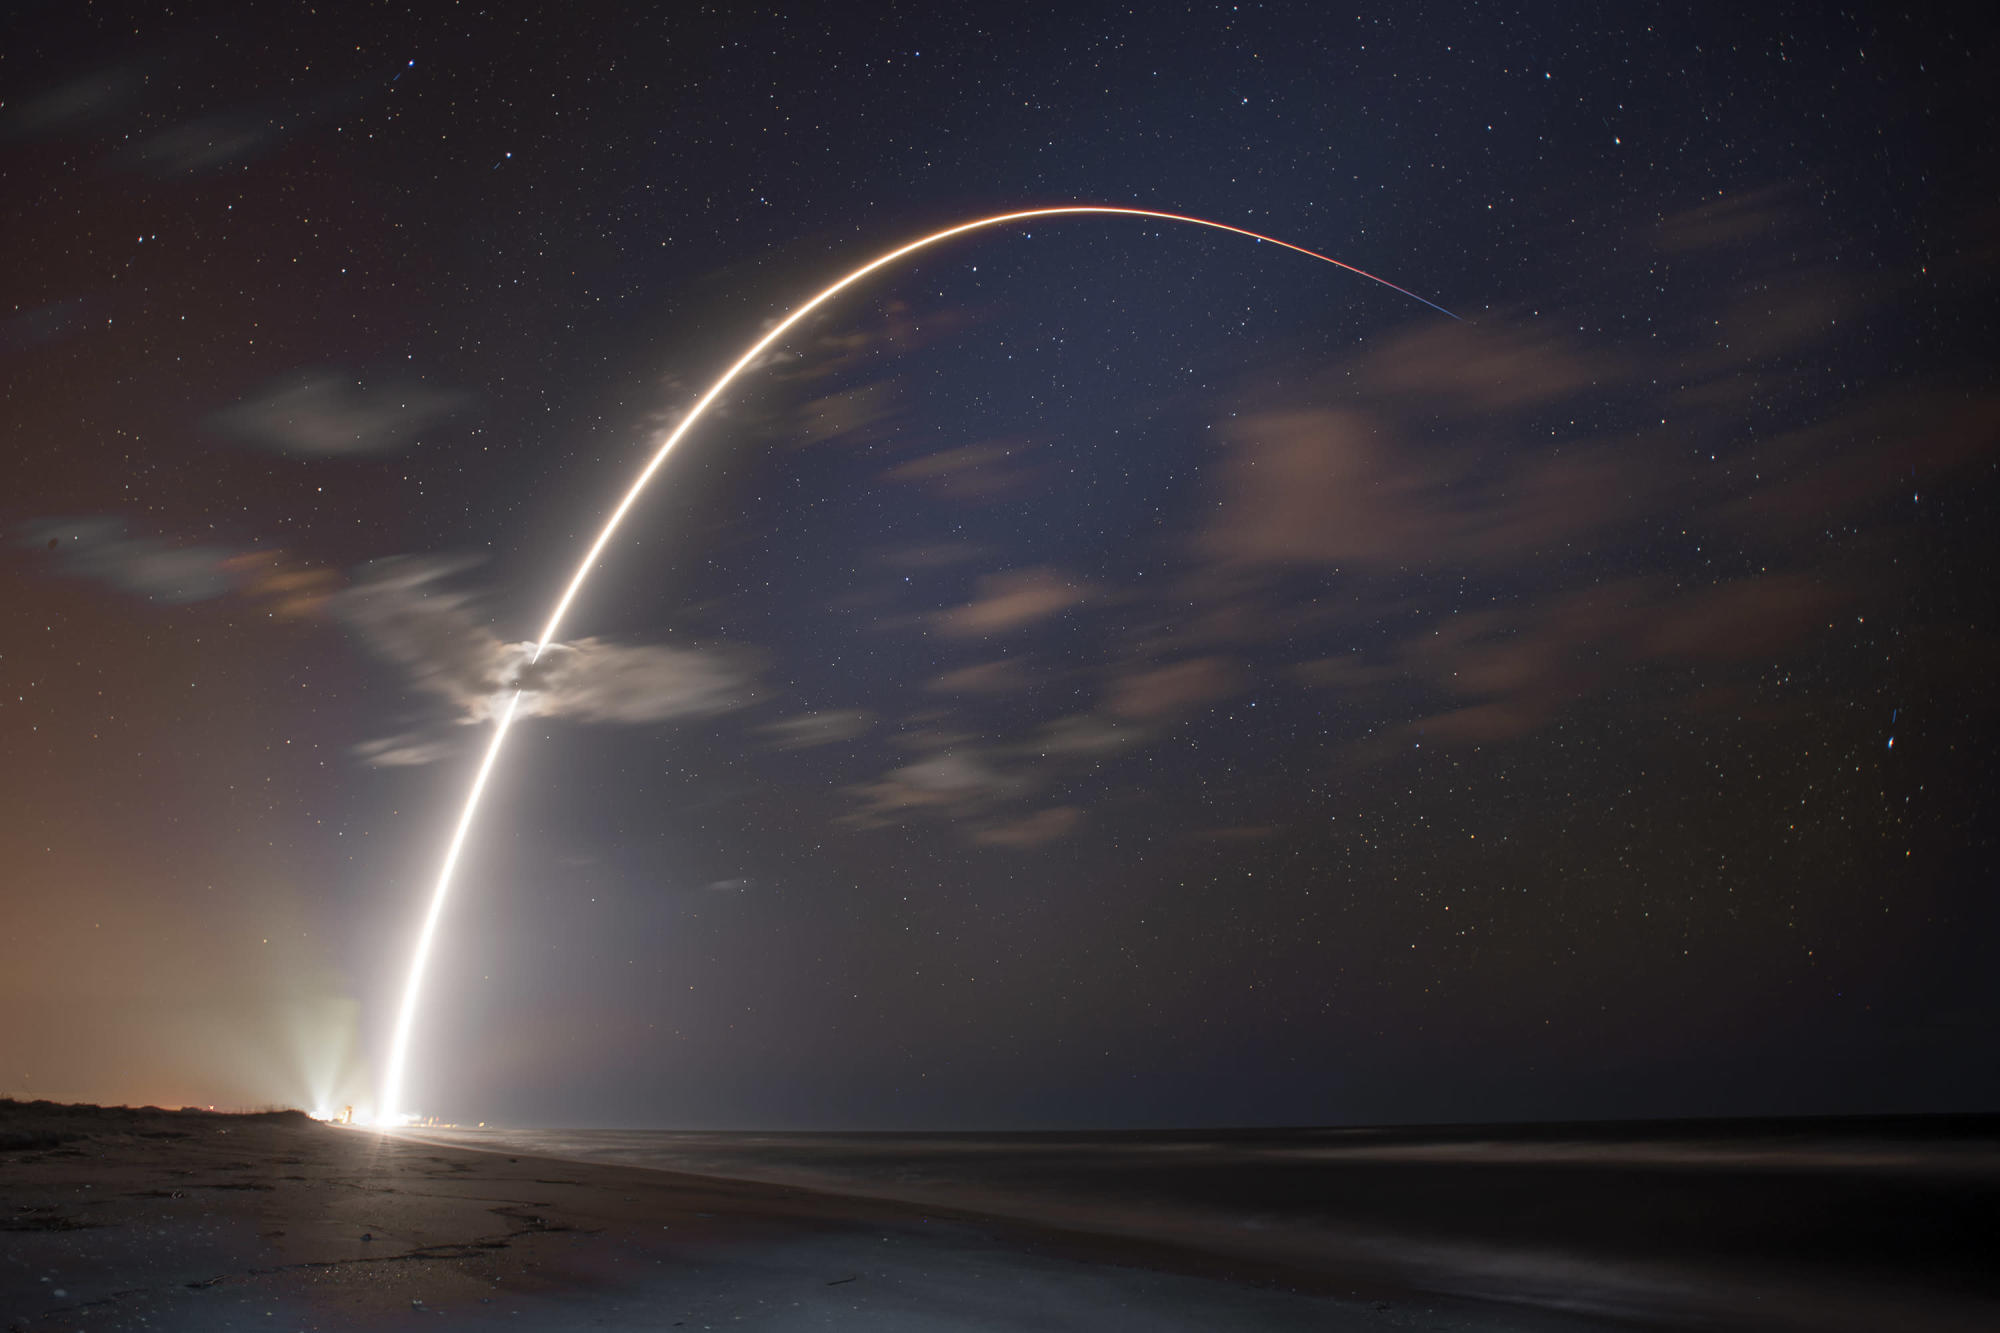 SpaceX launches 60 new Starlink satellites just one week after the last batch - Yahoo Philippines News